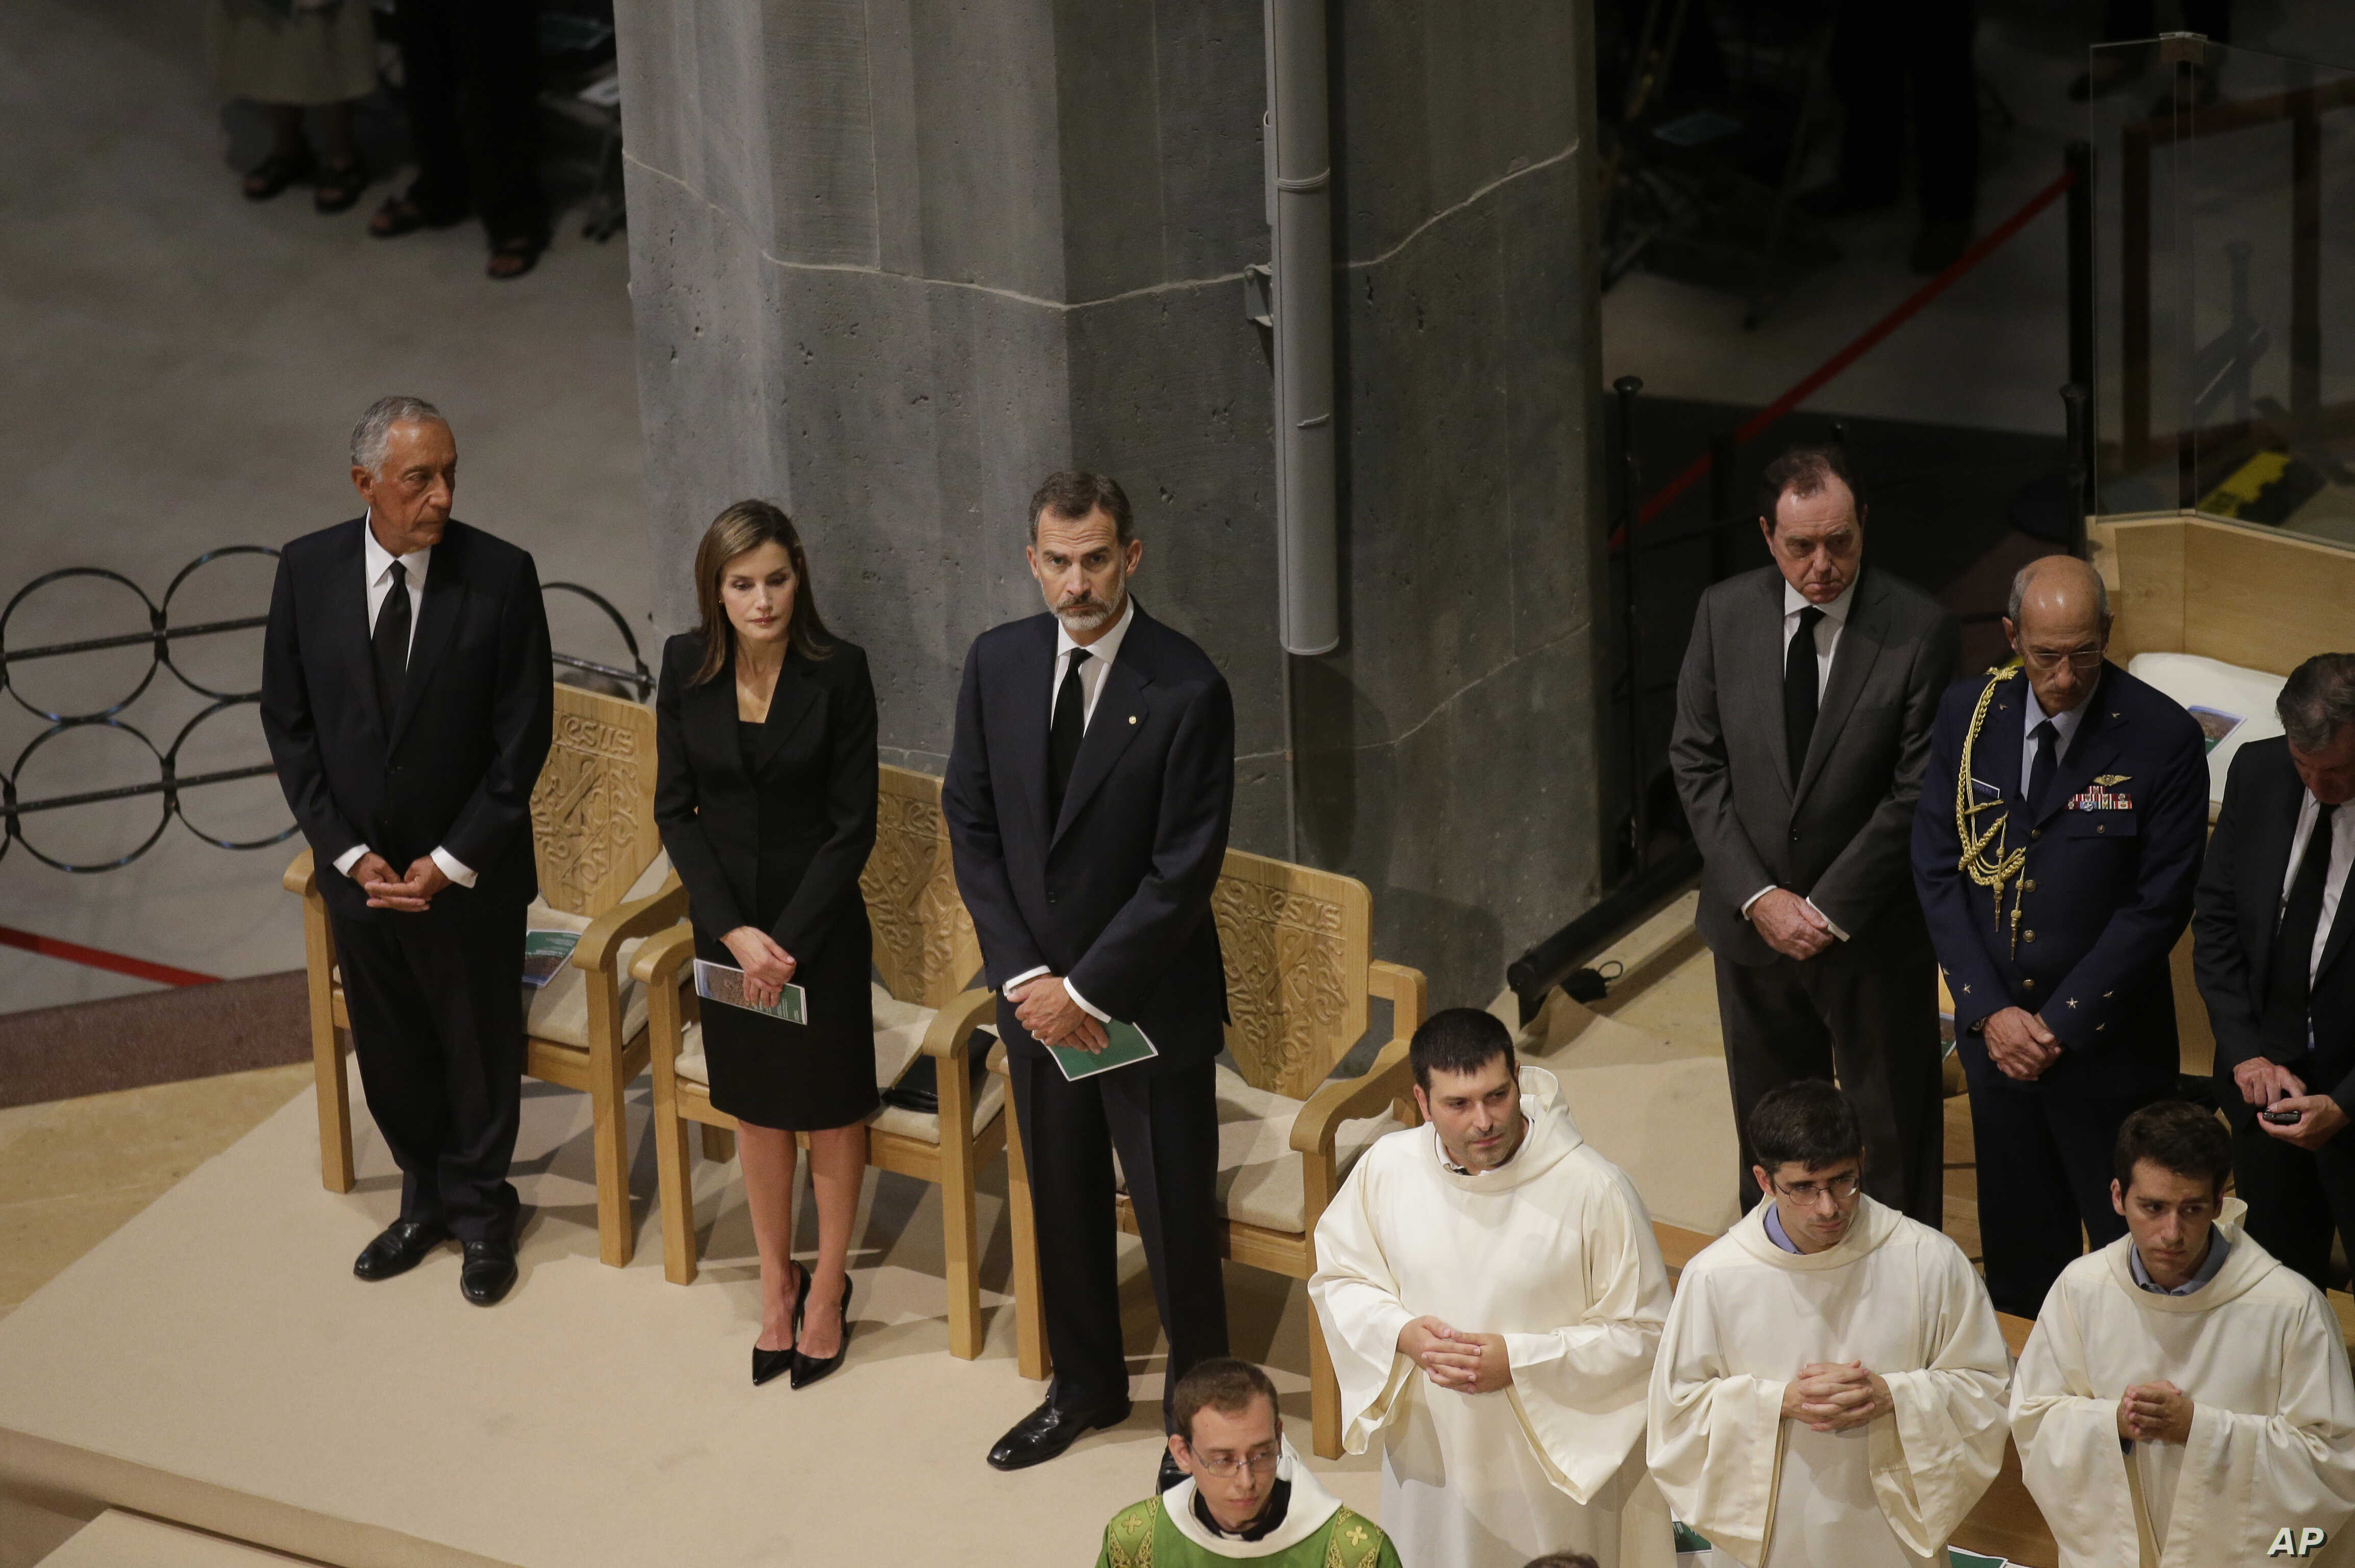 Spain's Queen Letizia, 2nd left and King Felipe, 3rd left attend a solemn Mass at Barcelona's Sagrada Familia Basilica for the victims of the terror attacks that killed 14 people and wounded over 120 in Barcelona, Aug. 20, 2017.